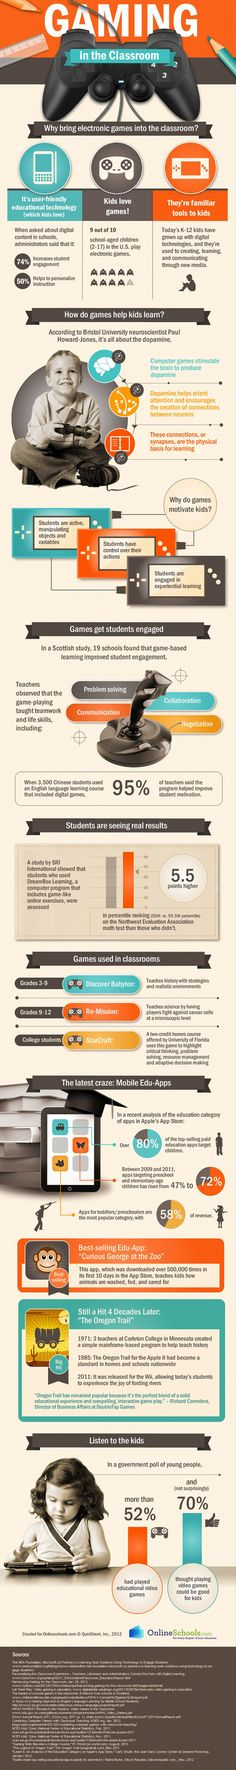 Jewish Game Based Learning - NLE Resources